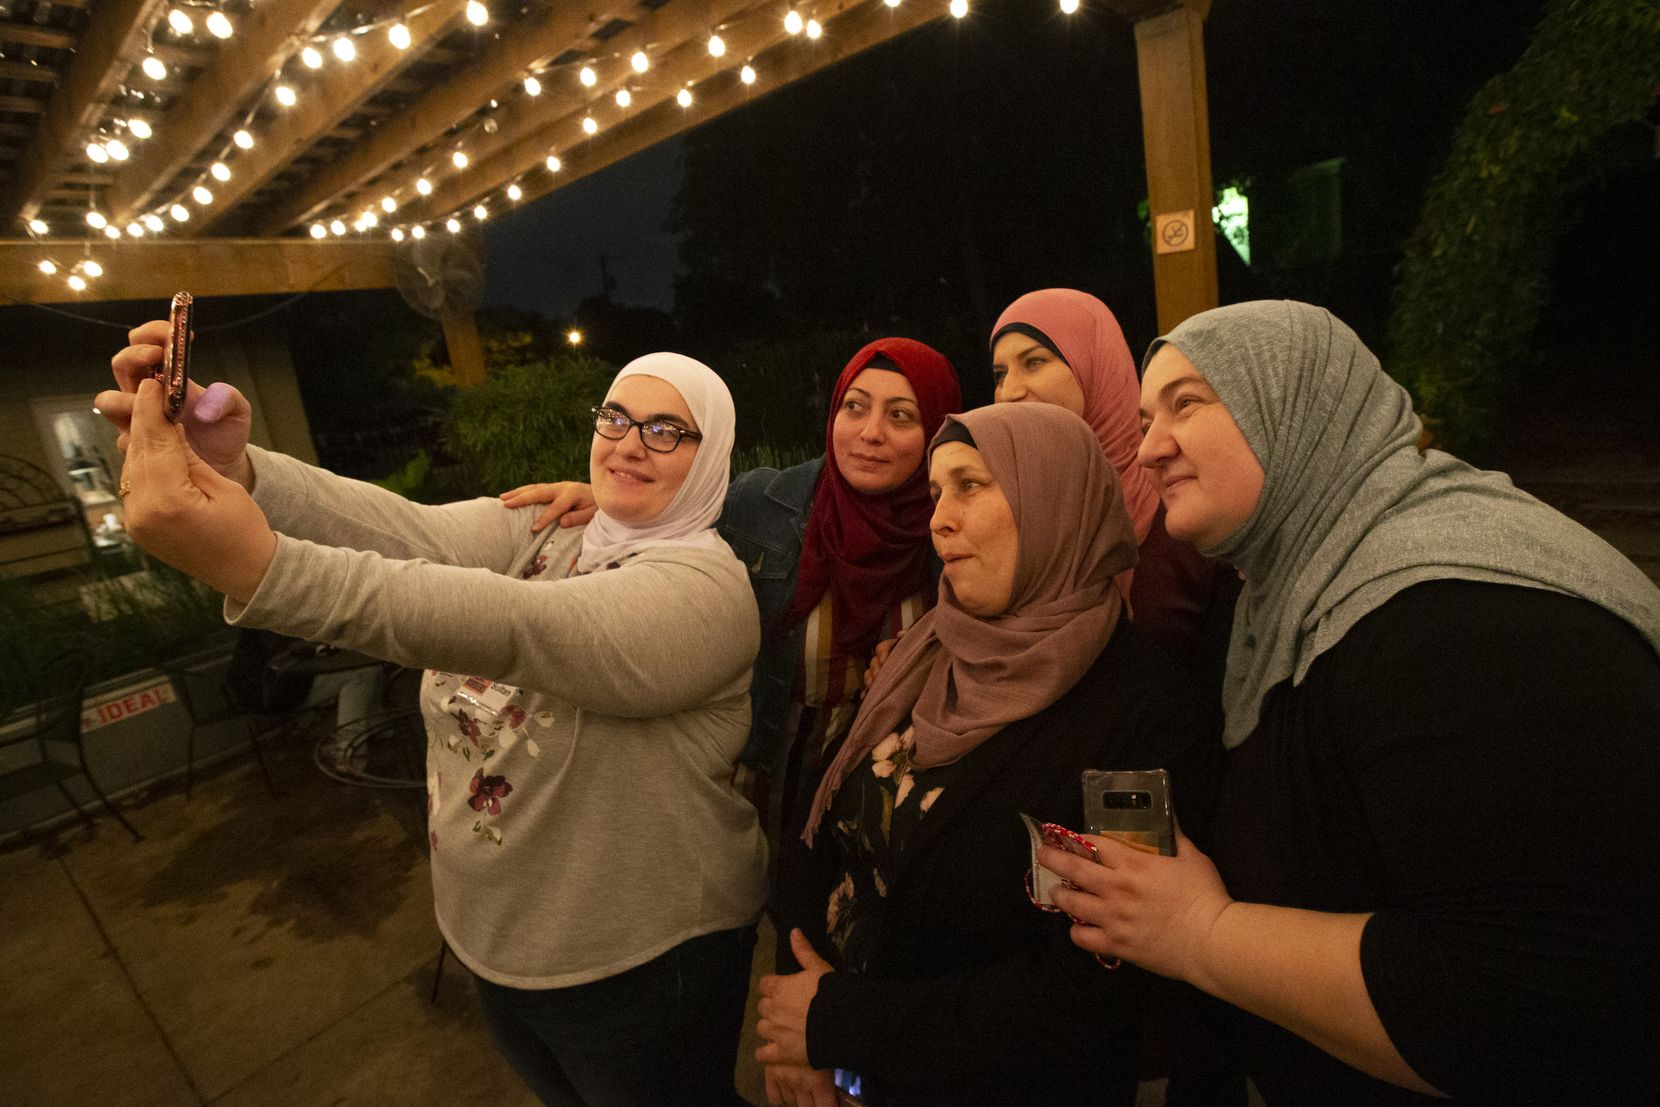 The community cooks from Syria, Chechnya and Turkey take a selfie following the Break Bread Break Borders dinner event honoring World Food Day at the Garden Cafe in Old East Dallas on Tuesday, Oct. 15, 2019. The women shared an evening of food, culture and storytelling from around the world with attendees. (Lynda M. Gonzalez/The Dallas Morning News)